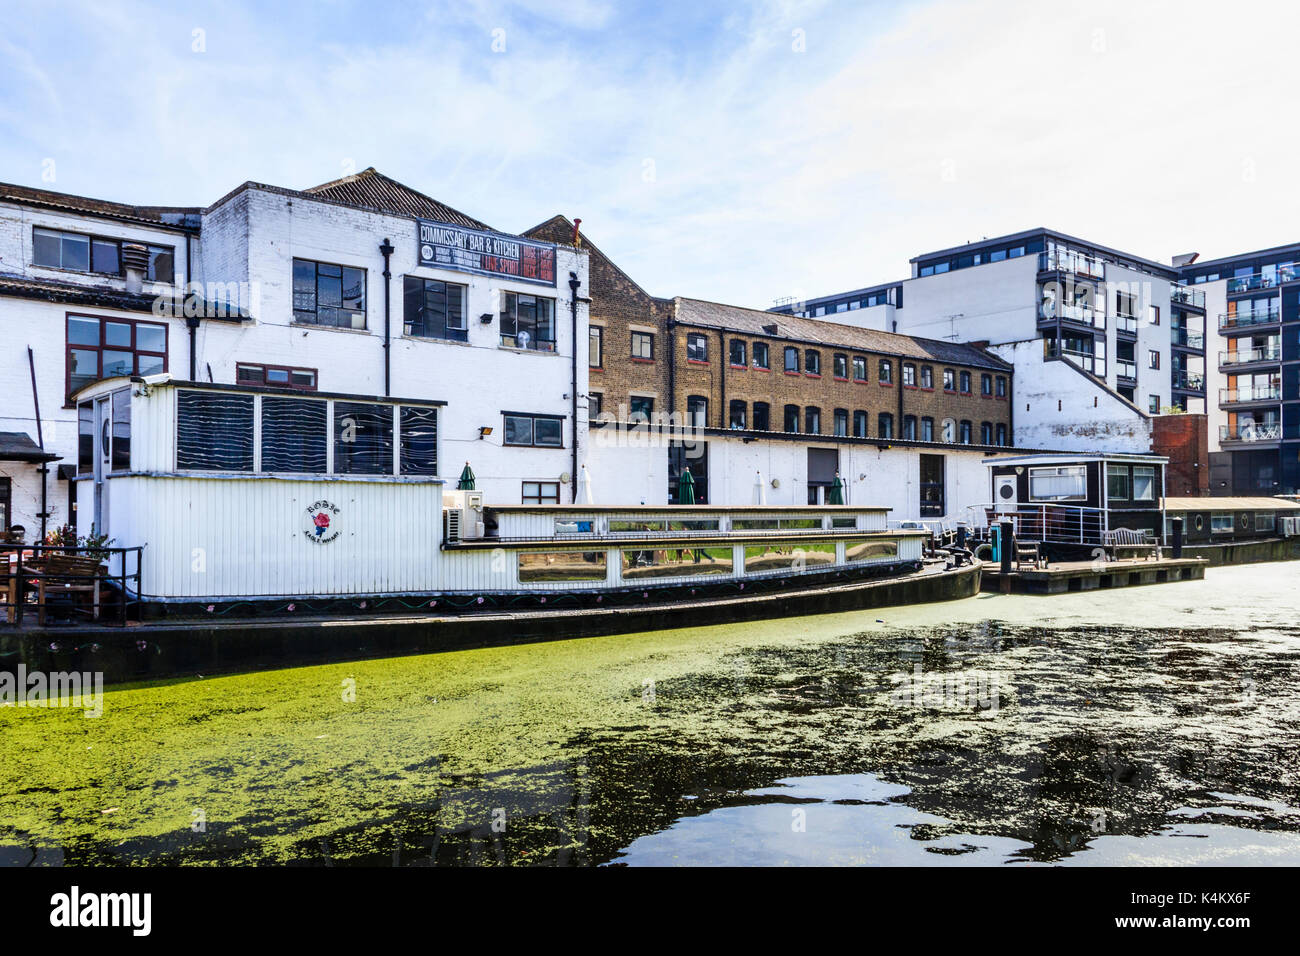 Commissary Bar & Kitchen, Regent's Canal, Islington, London, UK - Stock Image